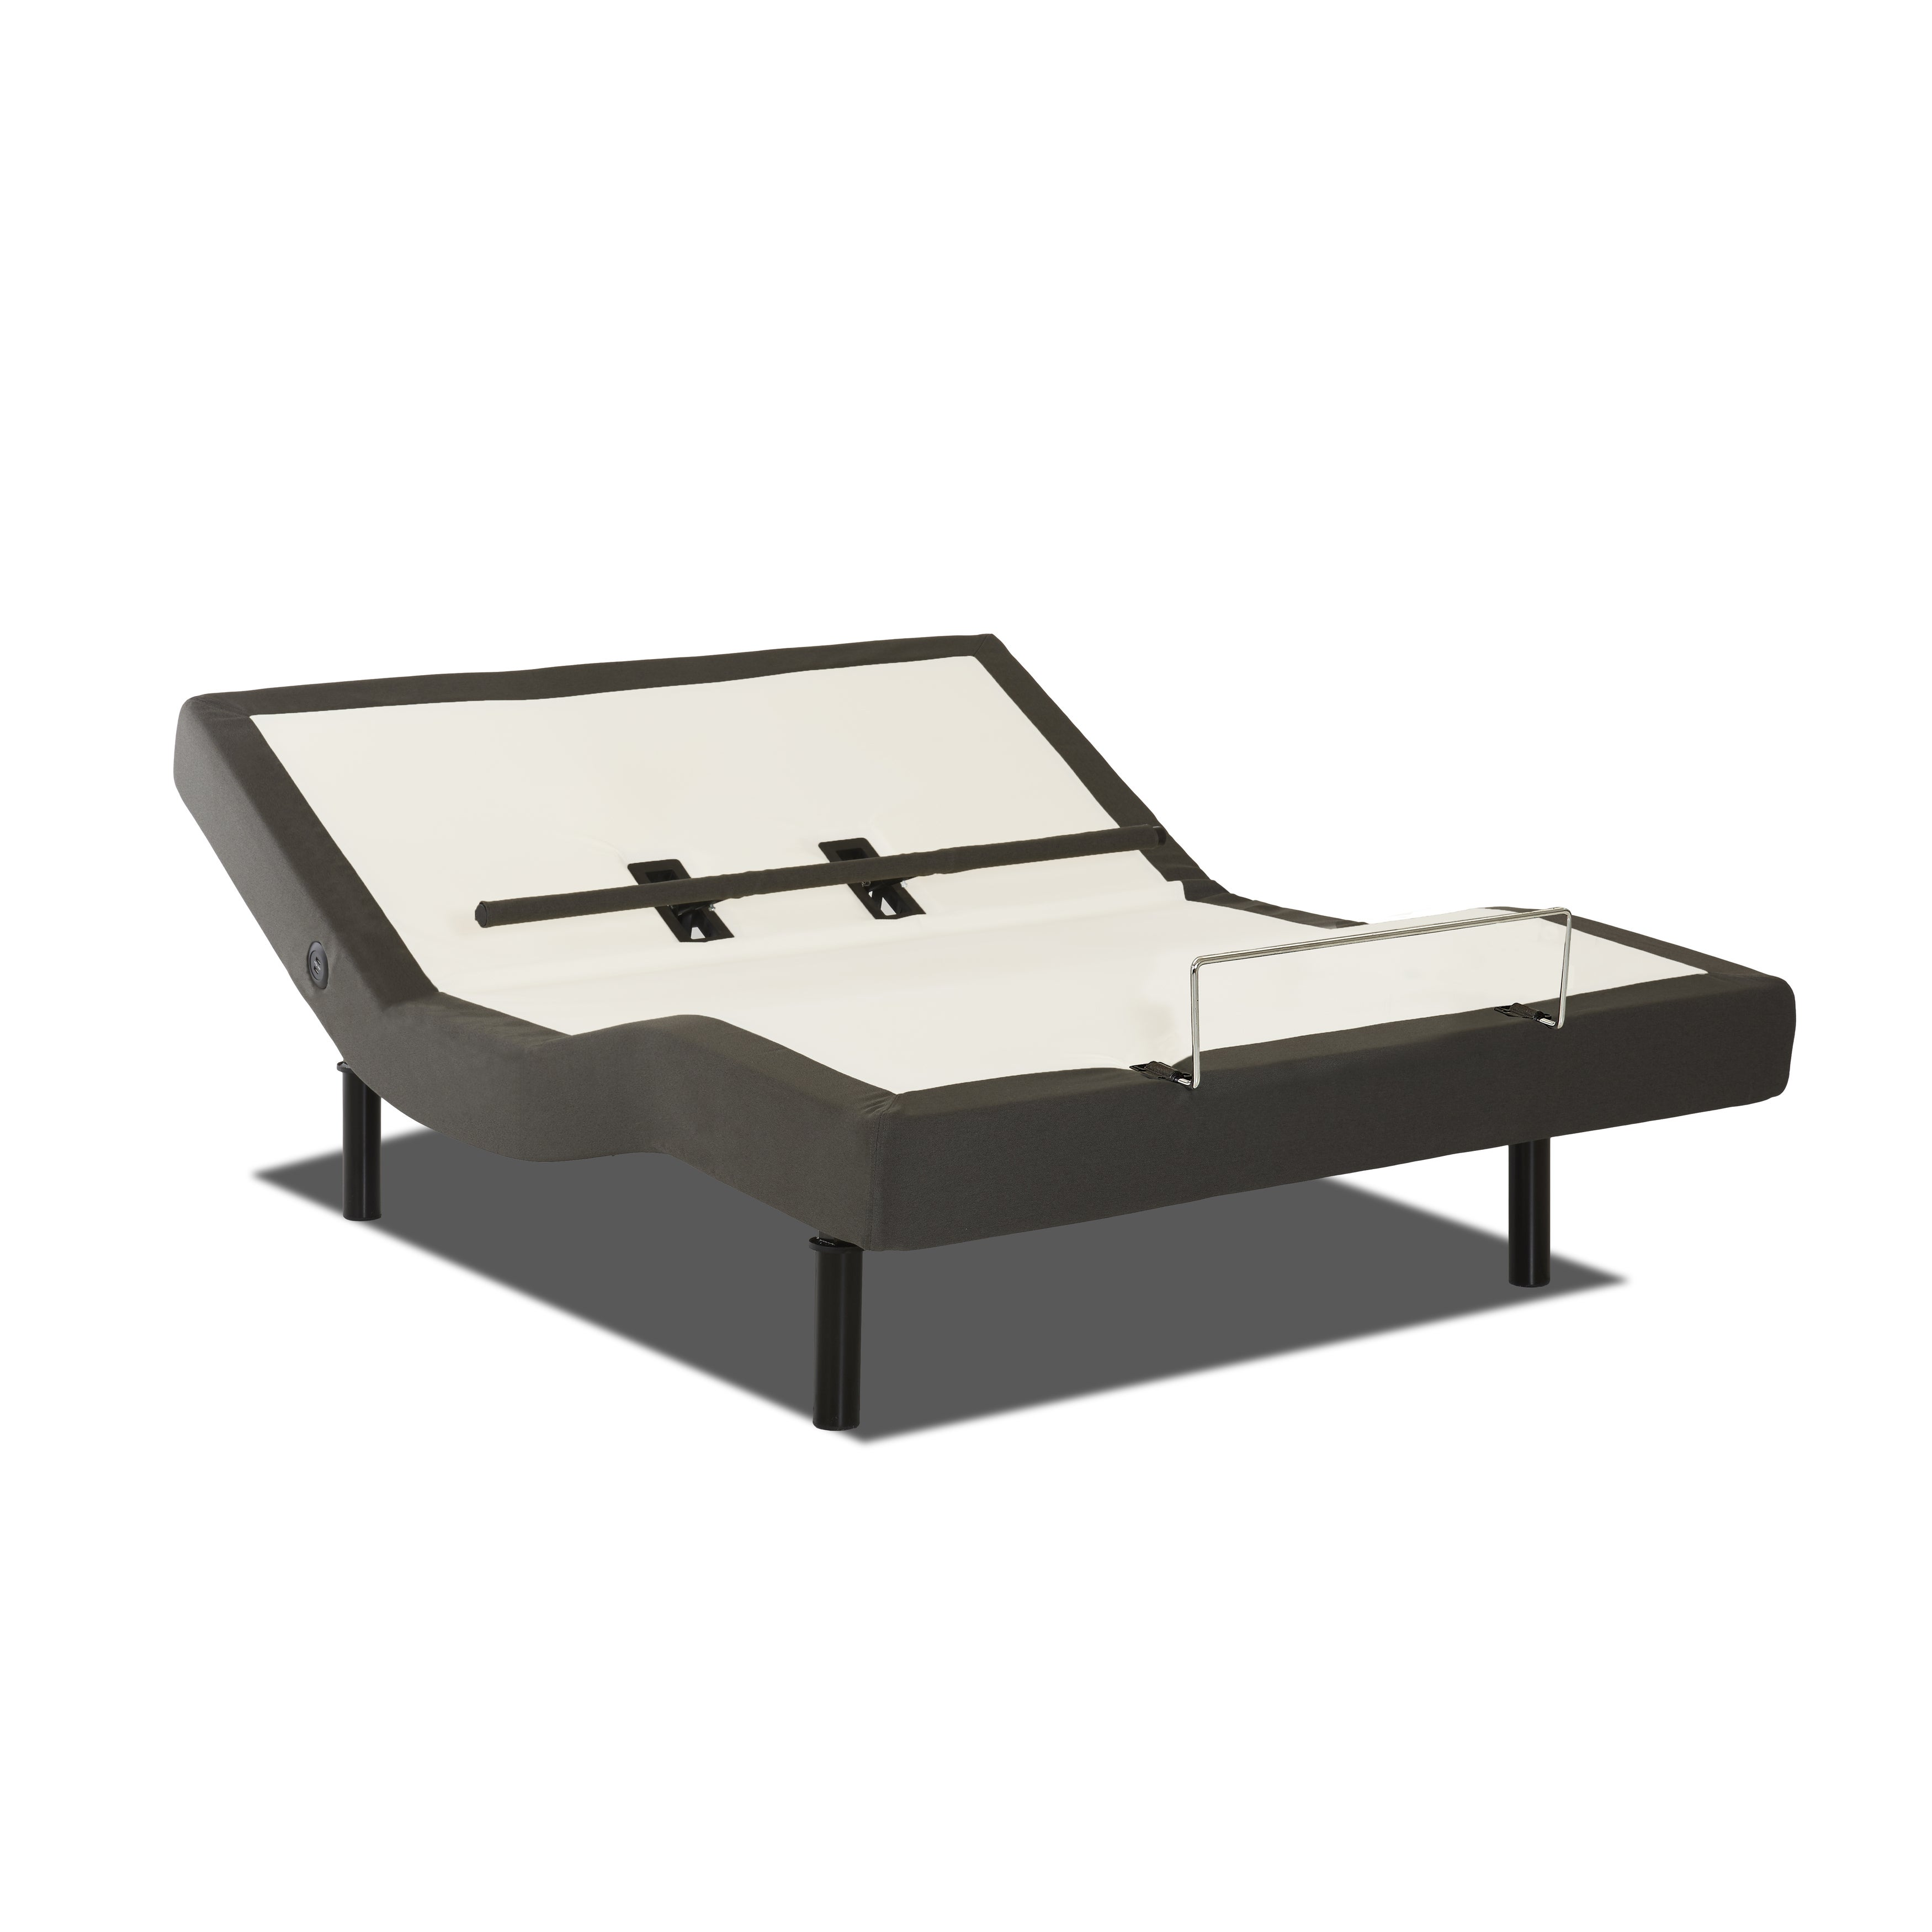 sale retailer 3f0cd 3fa24 Purelife Queen-size Adjustable Bed Base with Full Range Head and Foot Lift,  Lumbar Support, Massage, and Wireless Remote